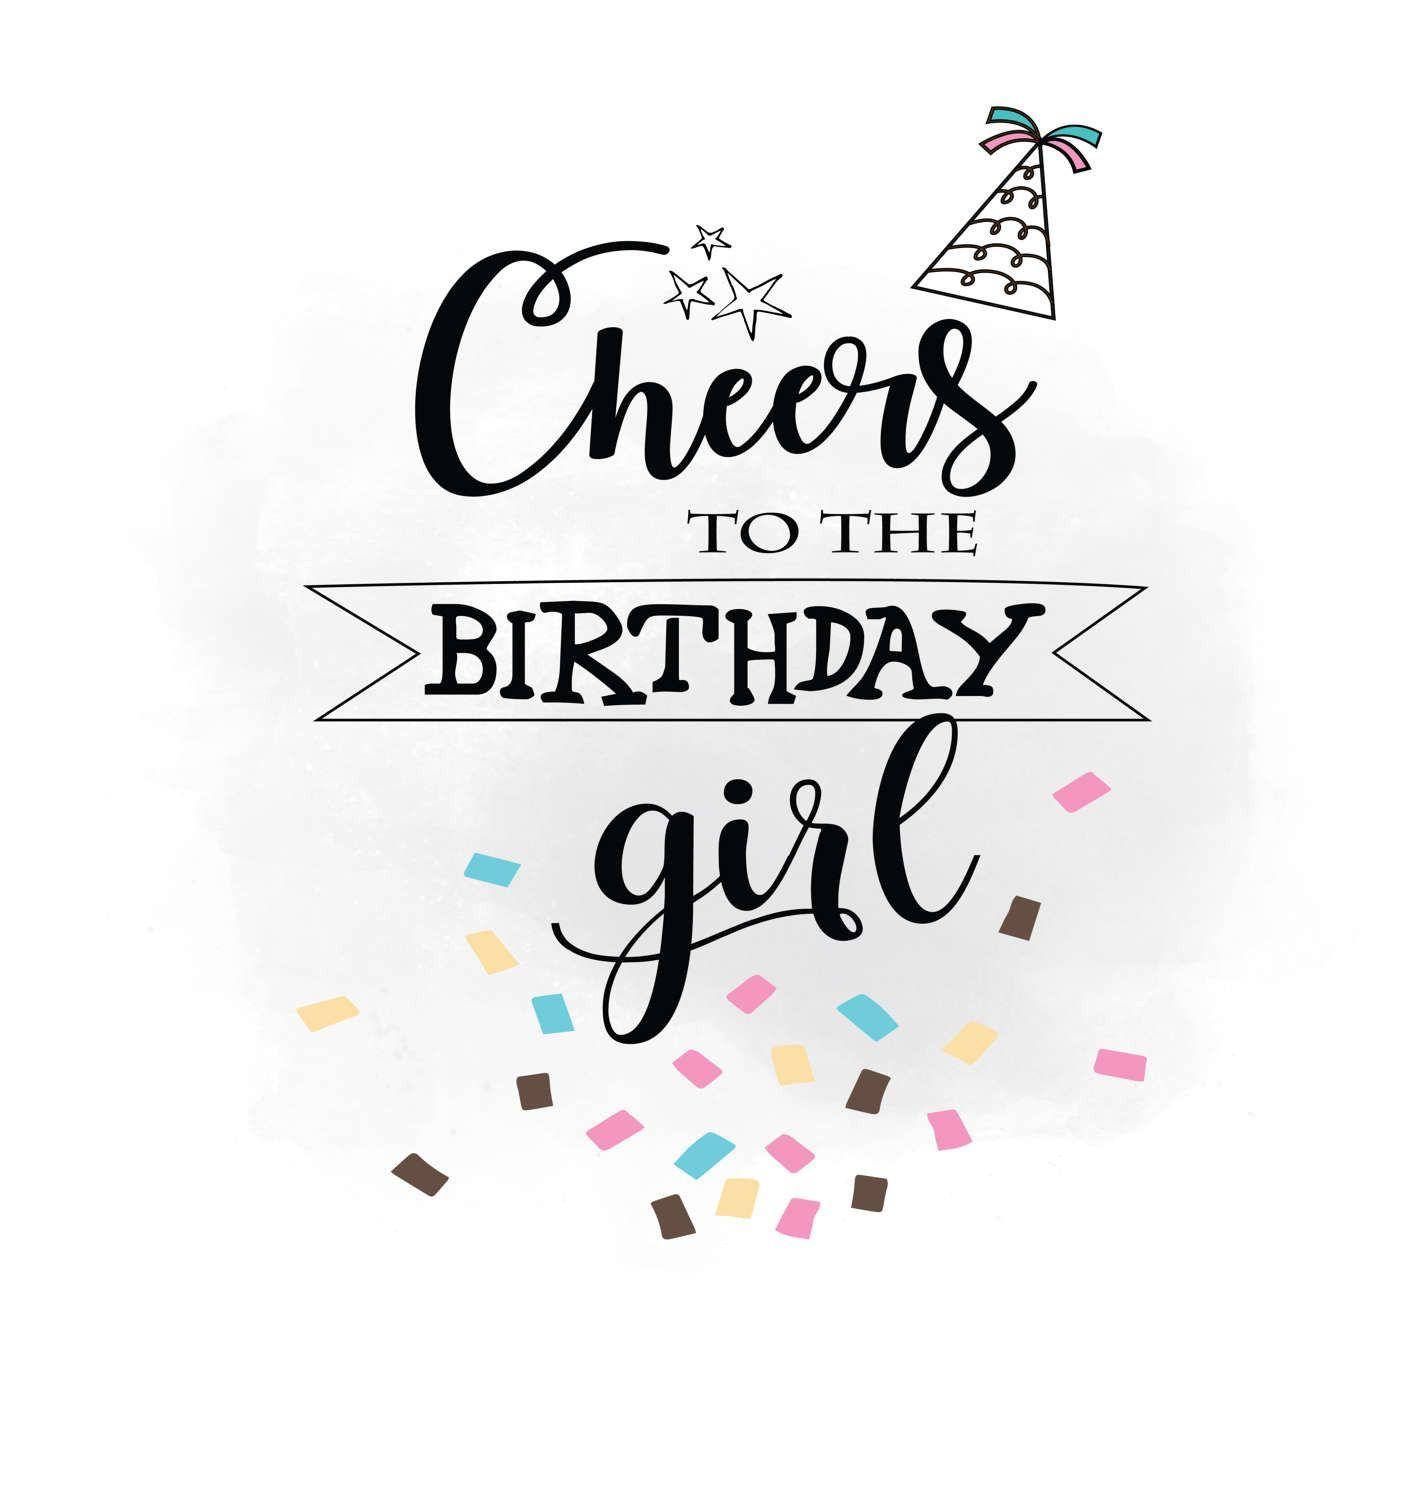 cheers to birthday girl svg clipart.20 Ideas for Birthday